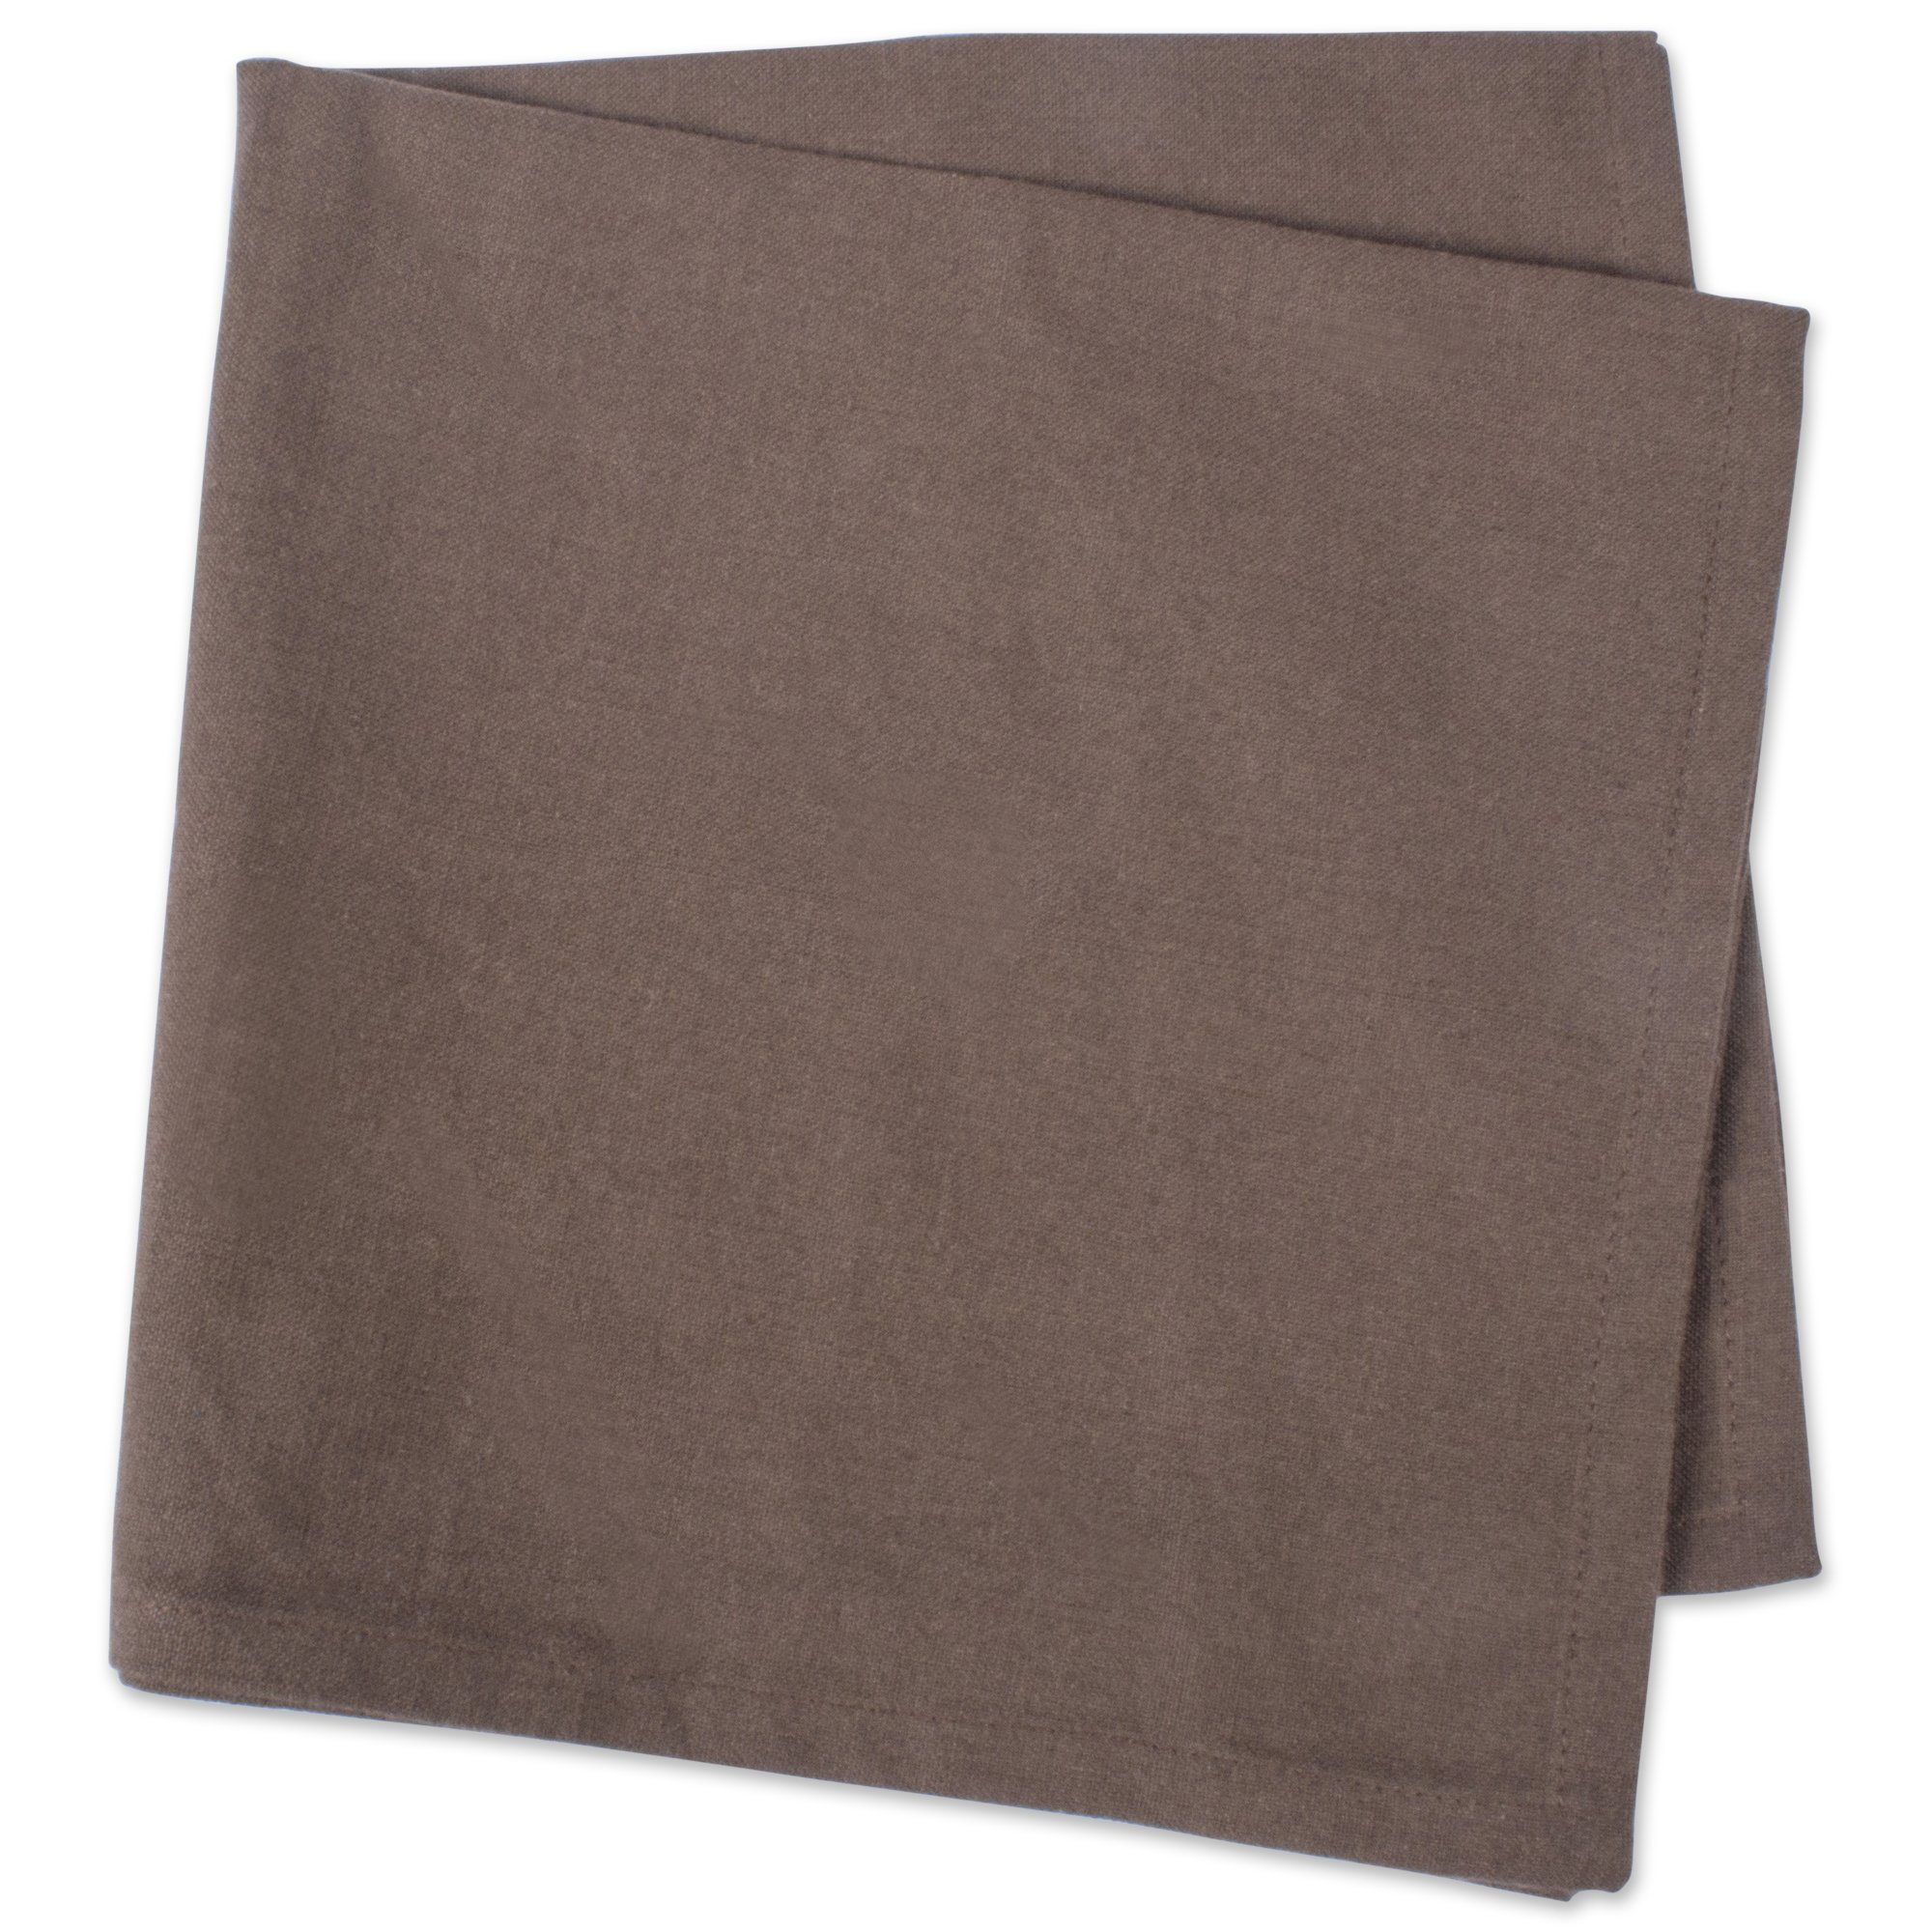 DII 100% Cotton Cloth Napkins, Oversized 20x20'' Dinner Napkins, For Basic Everyday Use, Banquets, Weddings, Events, or Family Gatherings - Set of 6, Dark Brown by DII (Image #4)